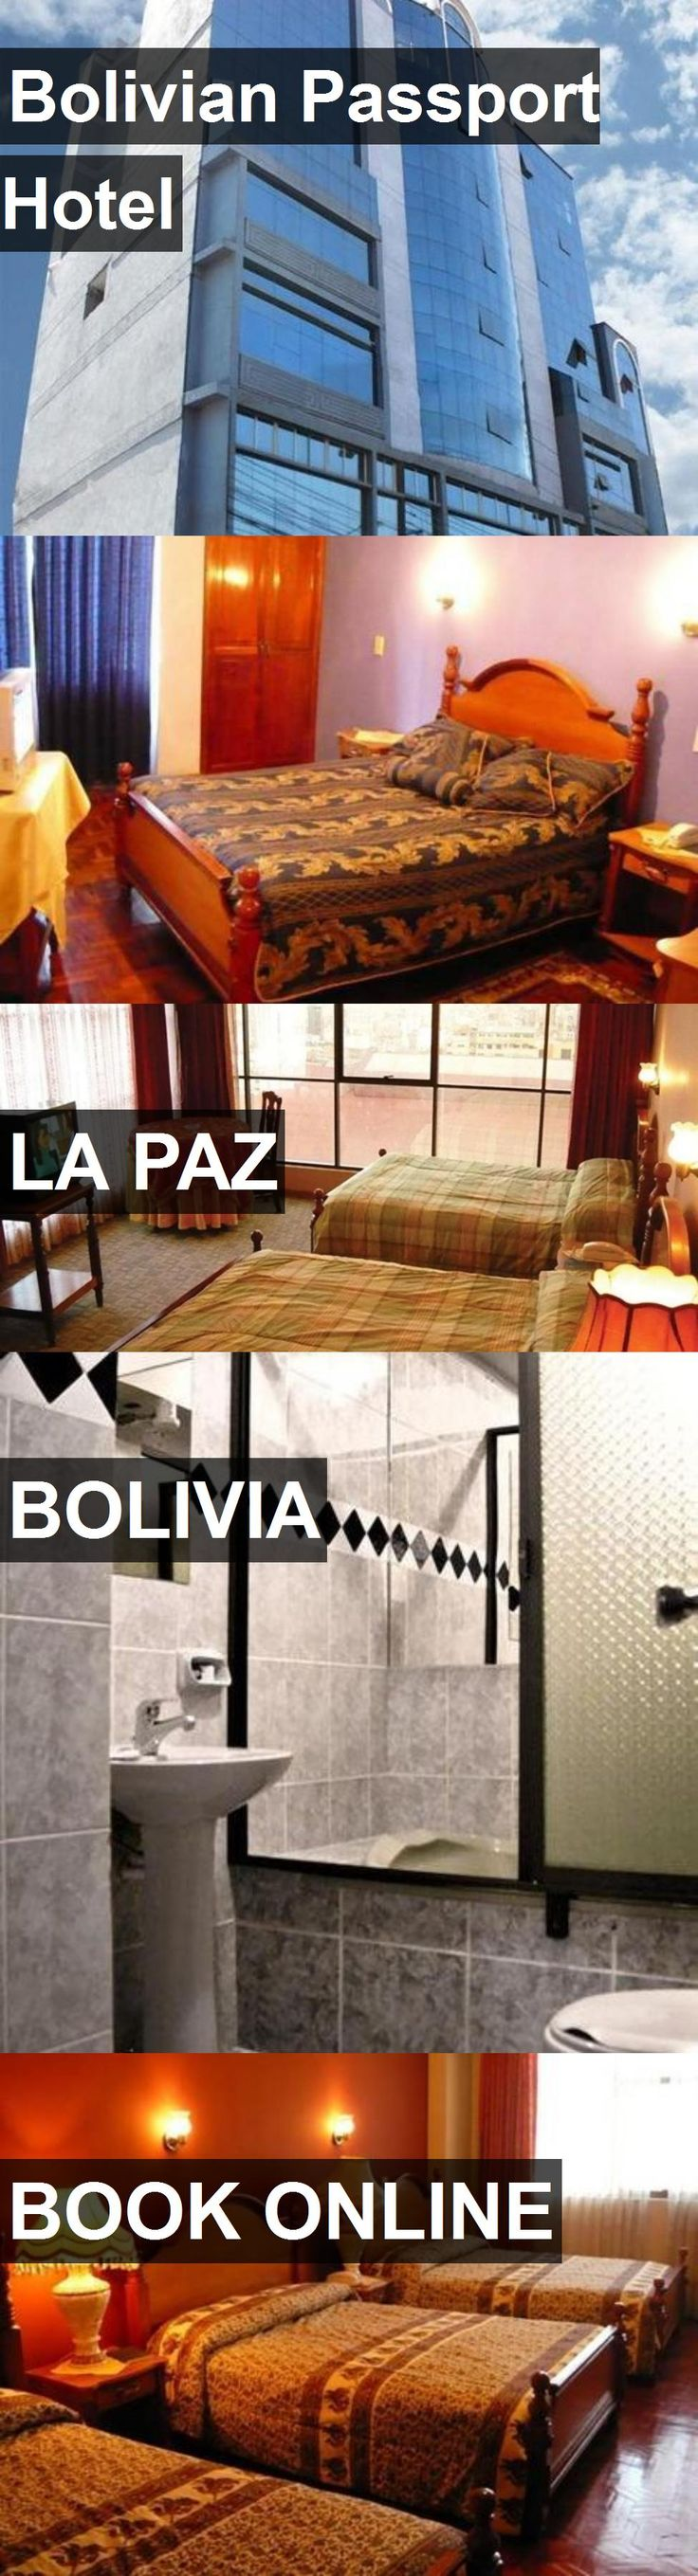 Bolivian Passport Hotel in La Paz, Bolivia. For more information, photos, reviews and best prices please follow the link. #Bolivia #LaPaz #travel #vacation #hotel